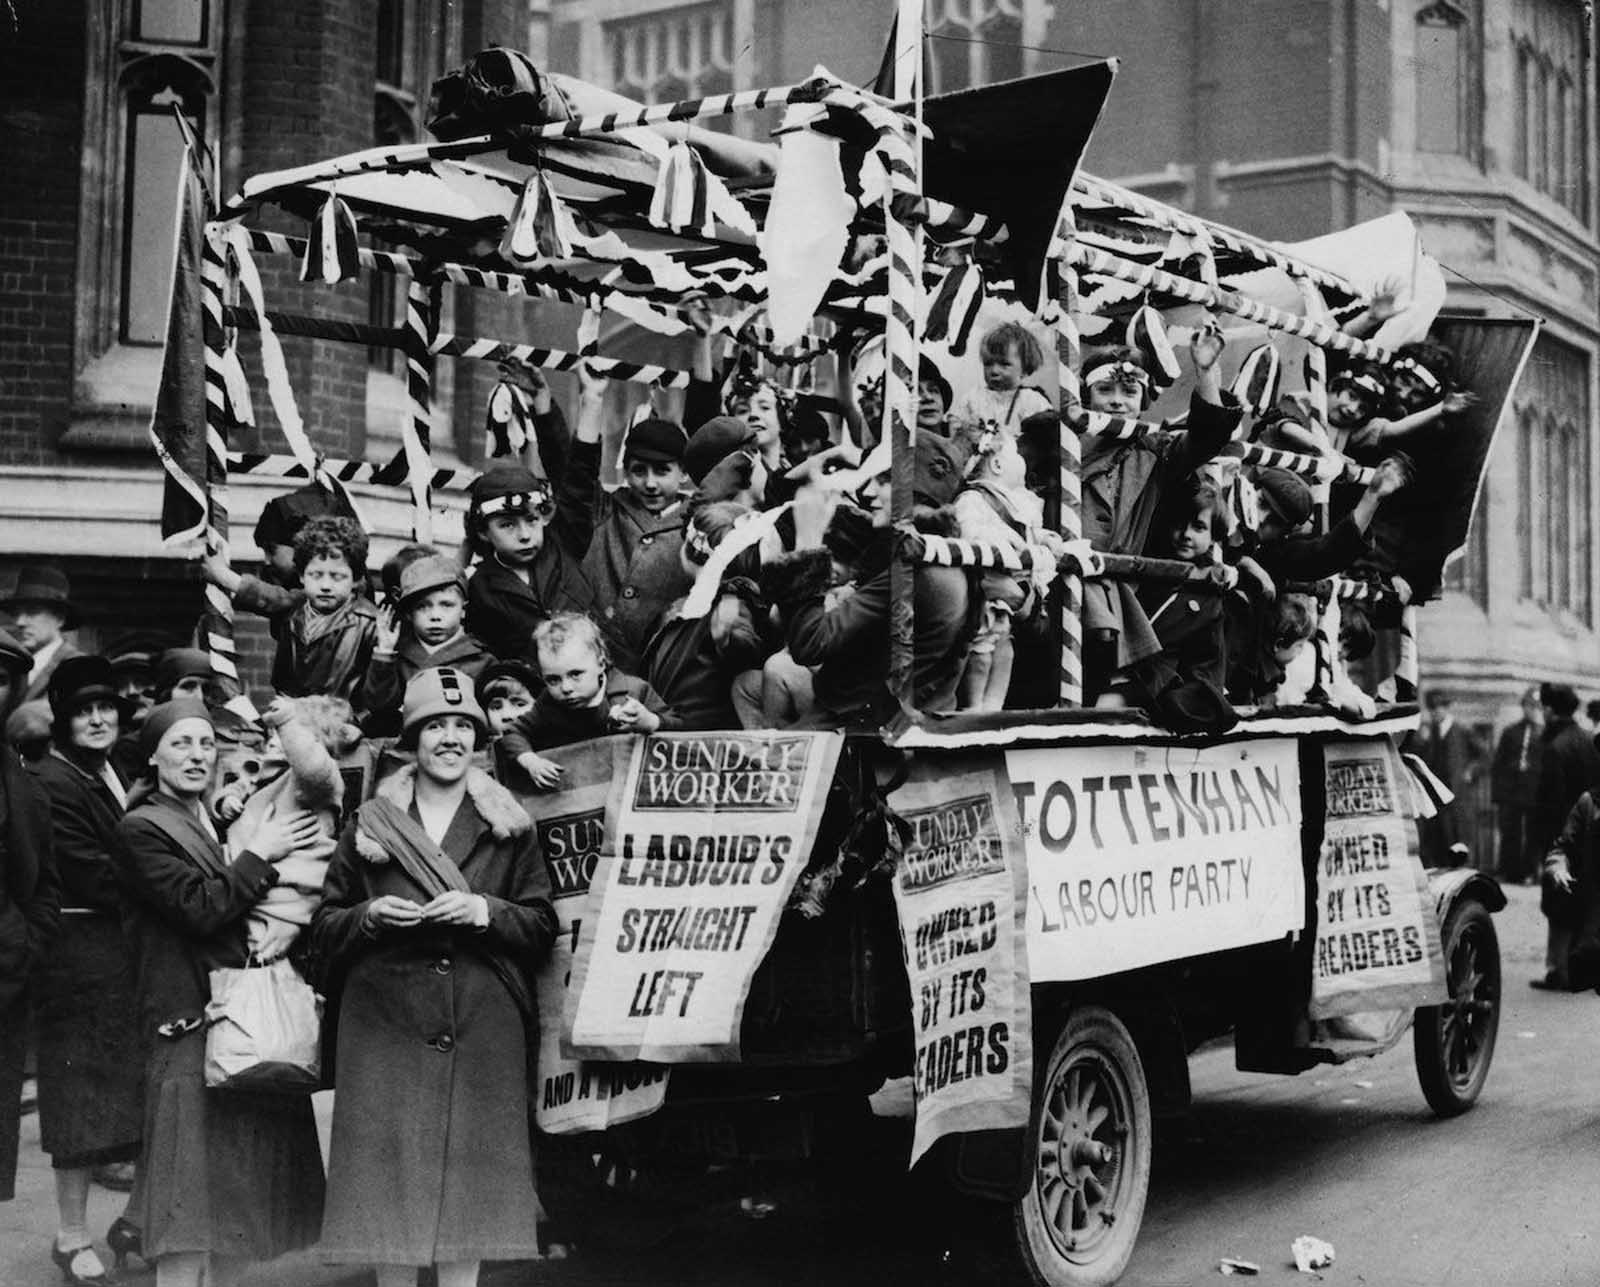 A Communist float covered with fliers from the Sunday Worker (the Sunday edition of the Daily Worker) and the Tottenham Labour Party, during a May Day parade and the Feast of Oratory in Hyde Park, London. 1928.